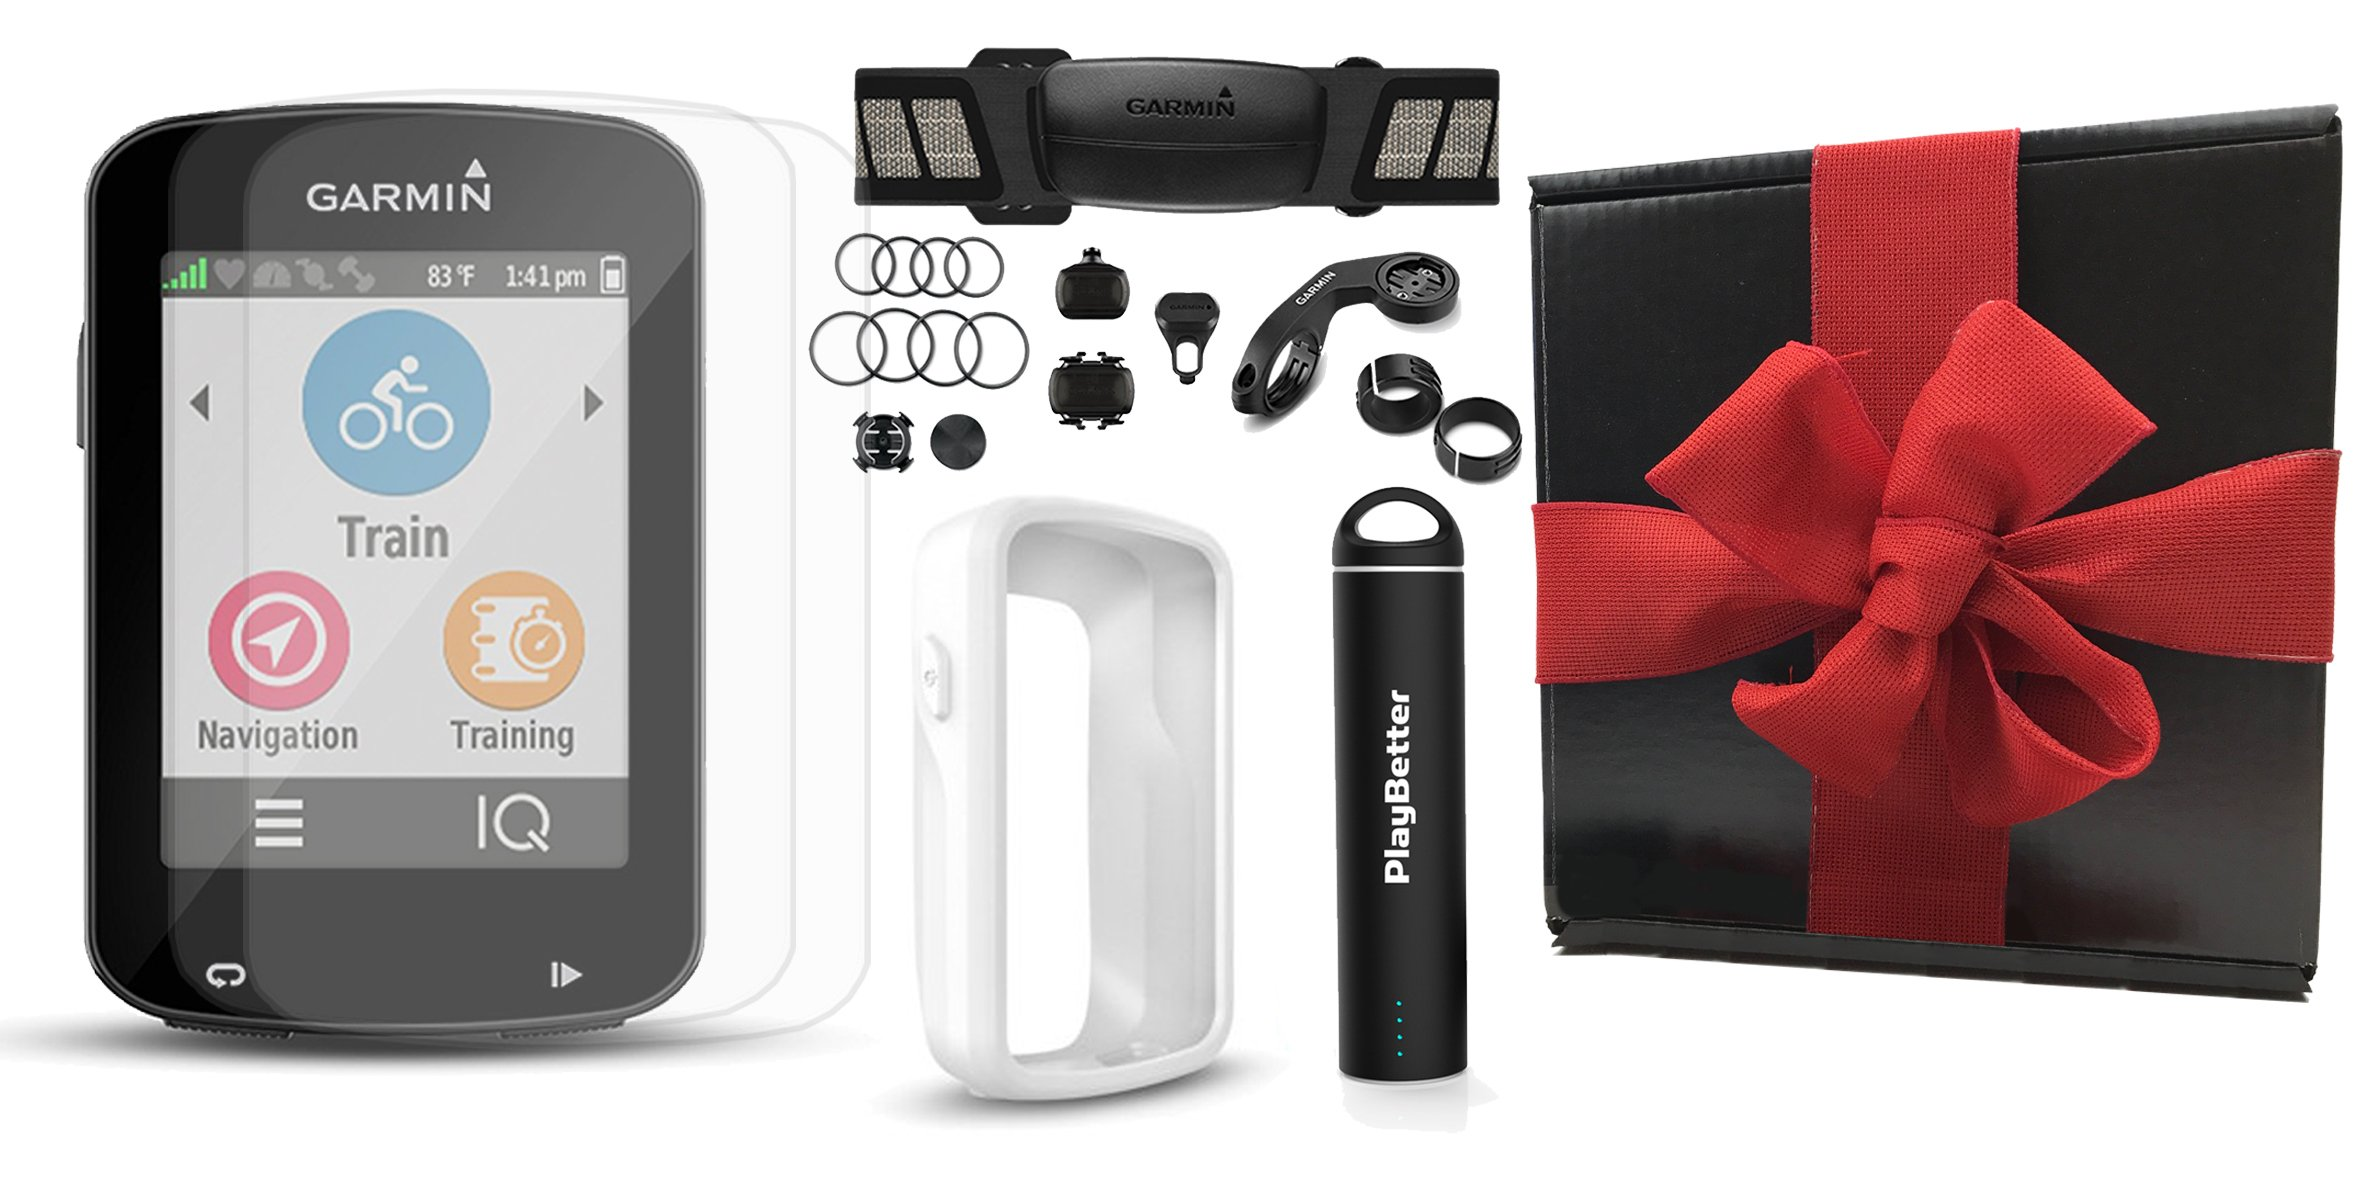 Garmin Edge 820 Gift Box Bundle with PlayBetter Silicone Protective Case, HD Glass Screen Protectors (2-Pack), Portable Charger, Bike Mounts | GPS Cycle Computer (White Case, Bundle w/ HRM & Sensors)